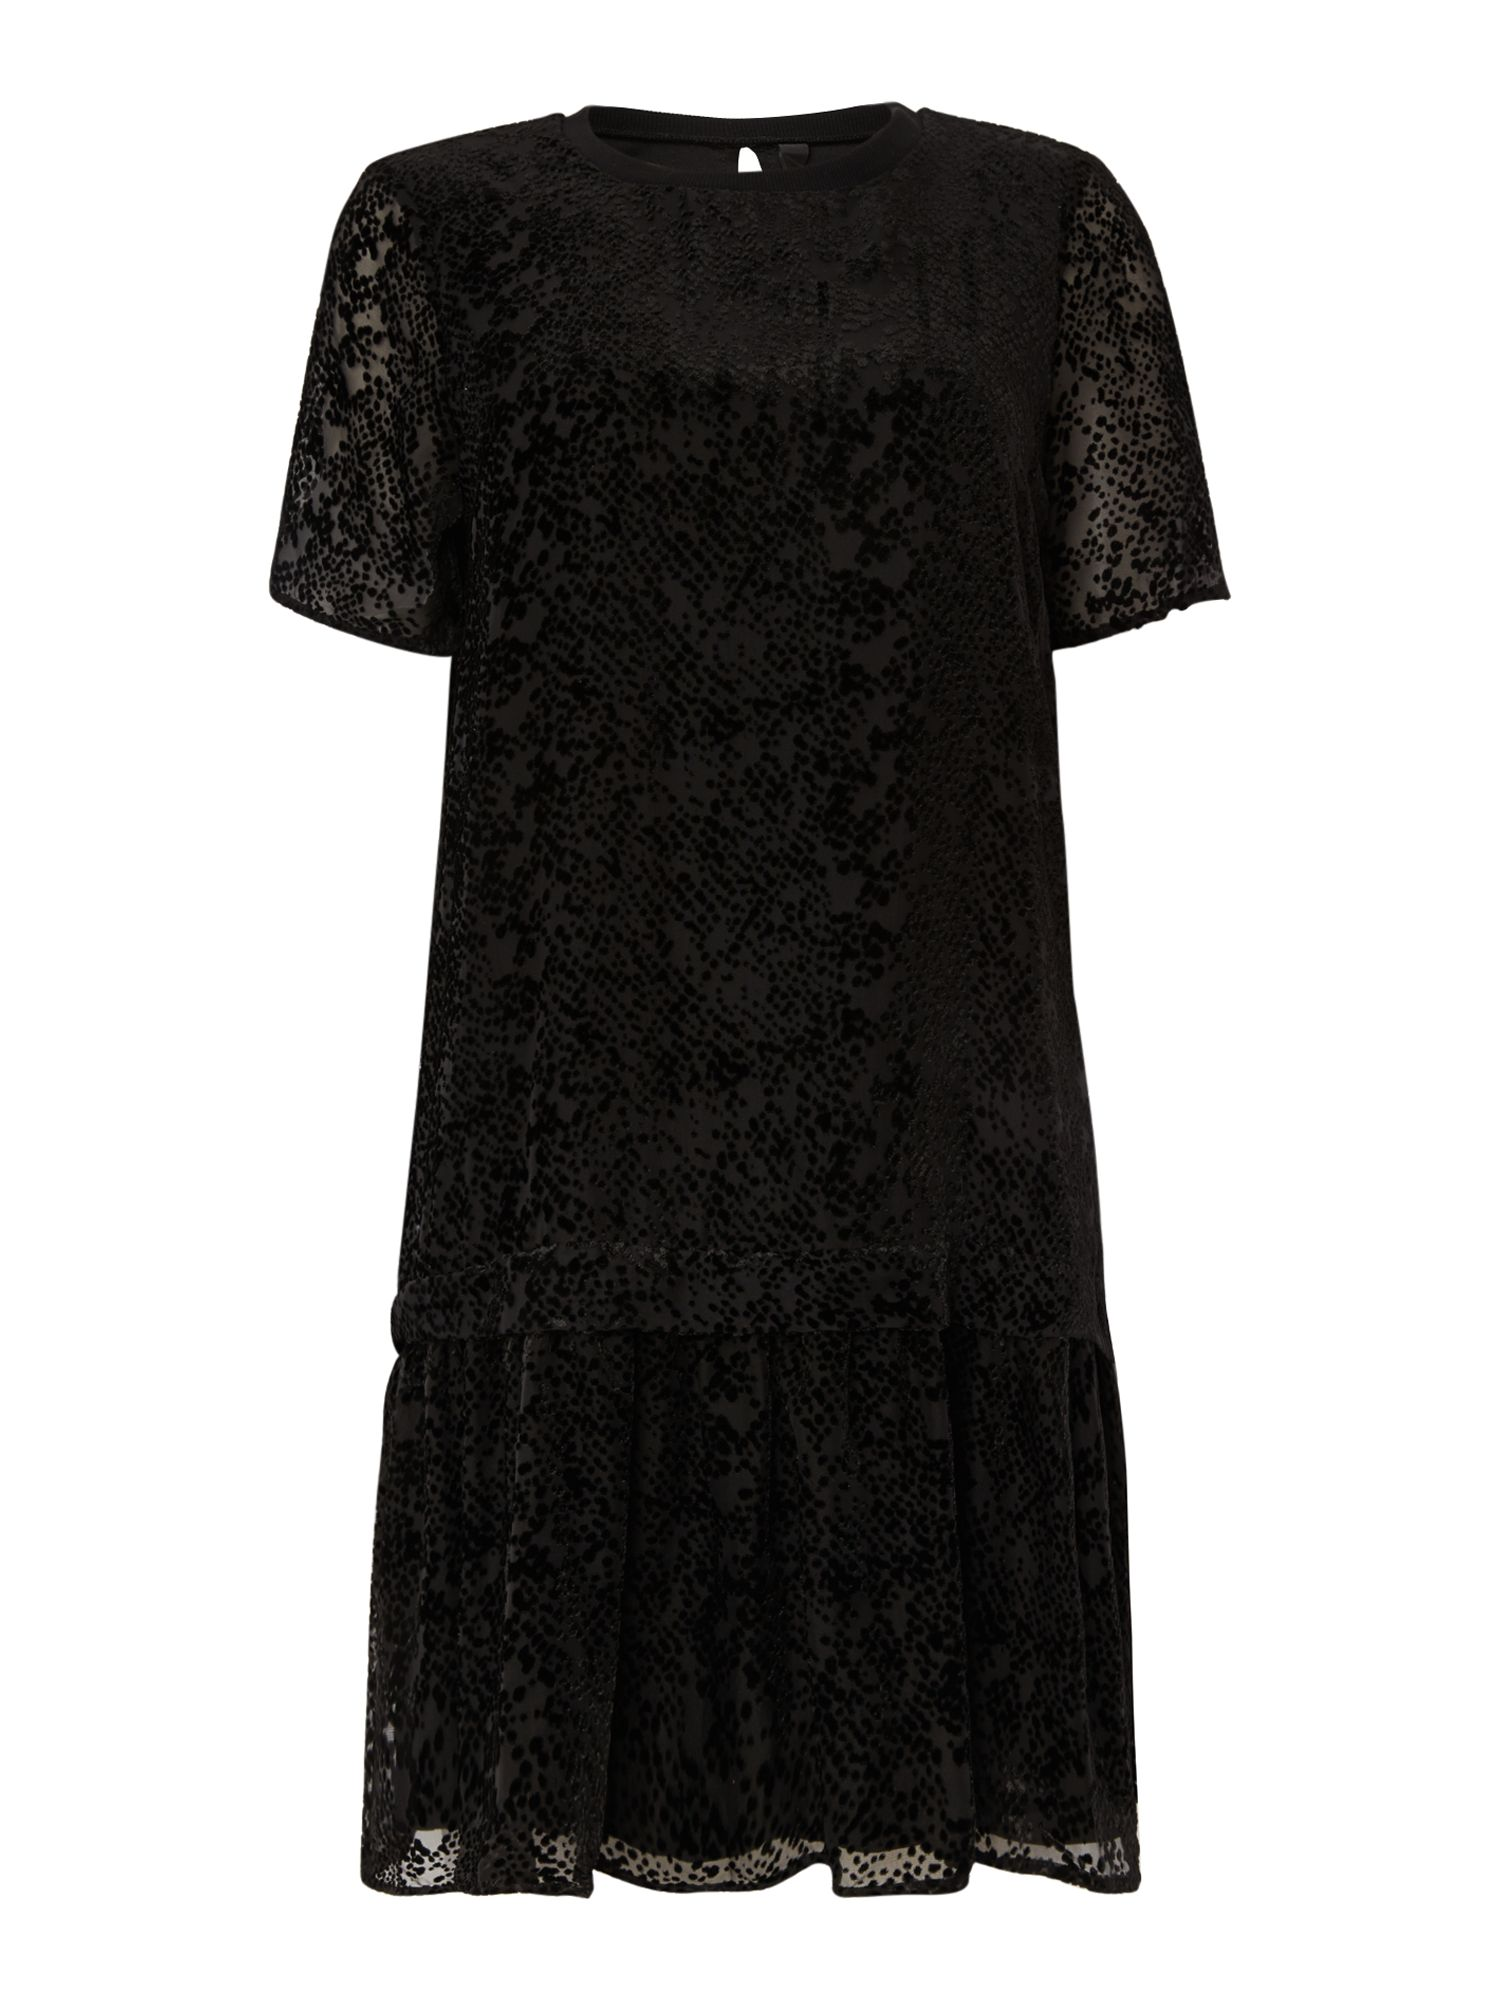 Y.A.S. Short sleeve drop waist lace dress Black £70.00 AT vintagedancer.com